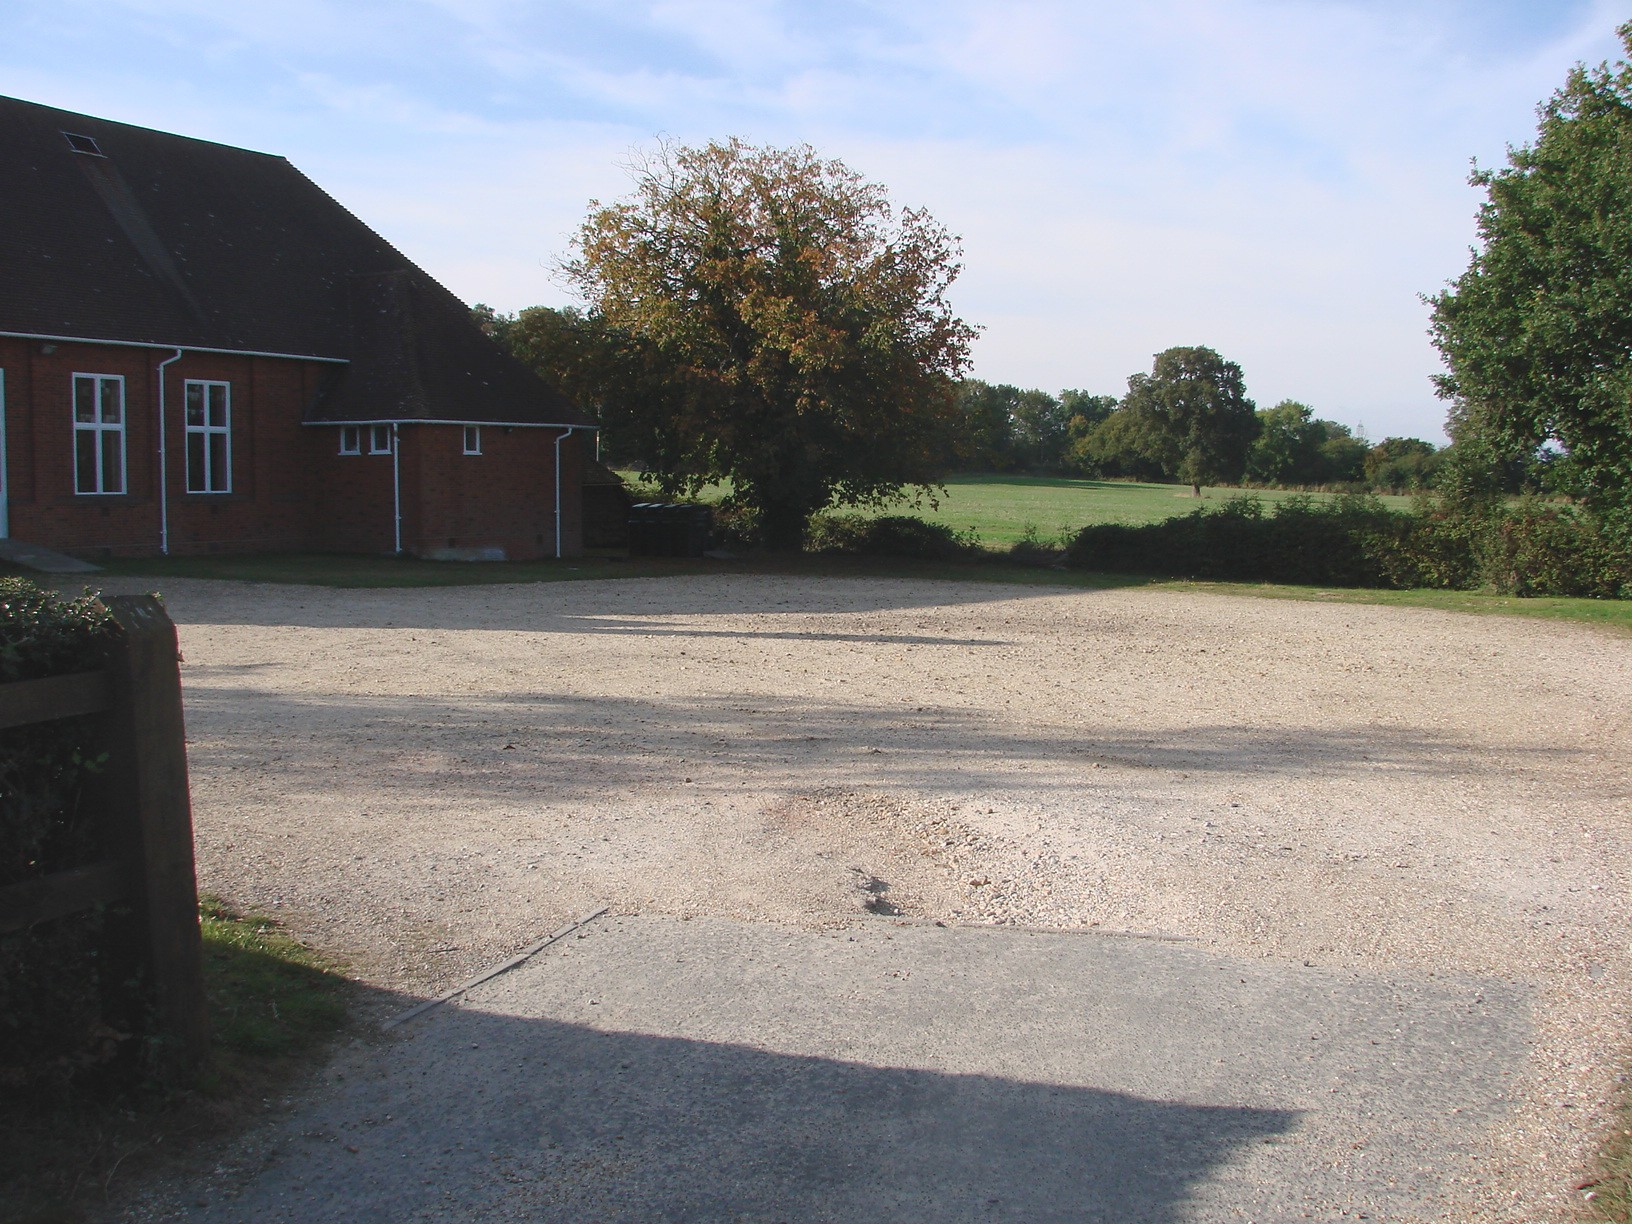 How To Park A Car >> Gallery | Rotherwick Village Hall